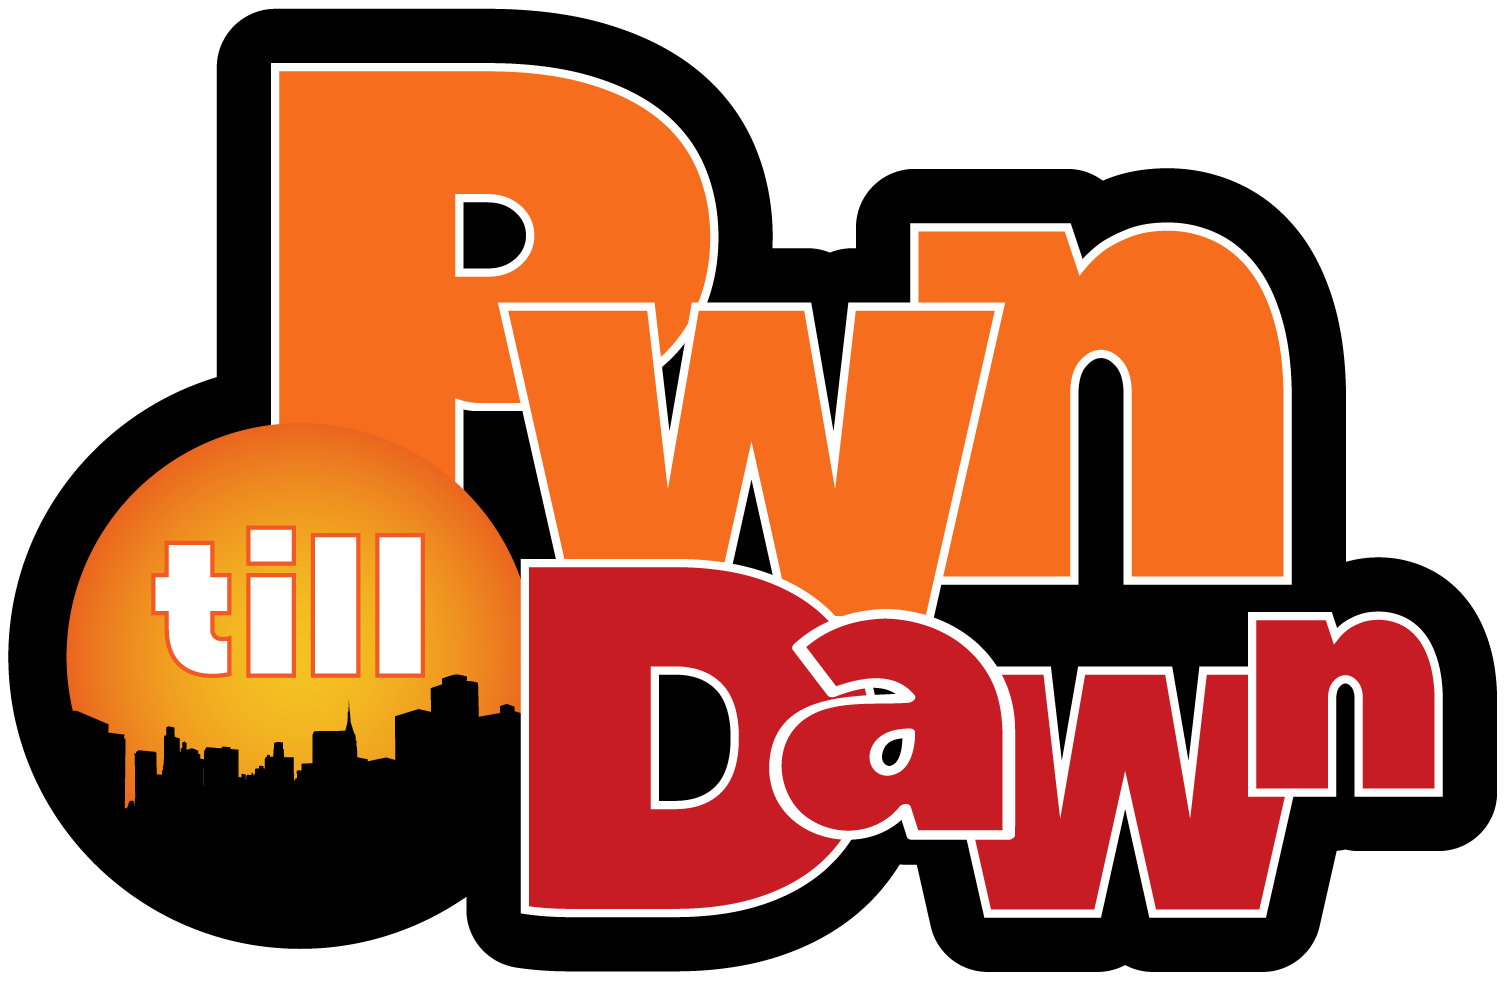 PwnTillDawn | The Computer Hacking Competition by wizlynx group